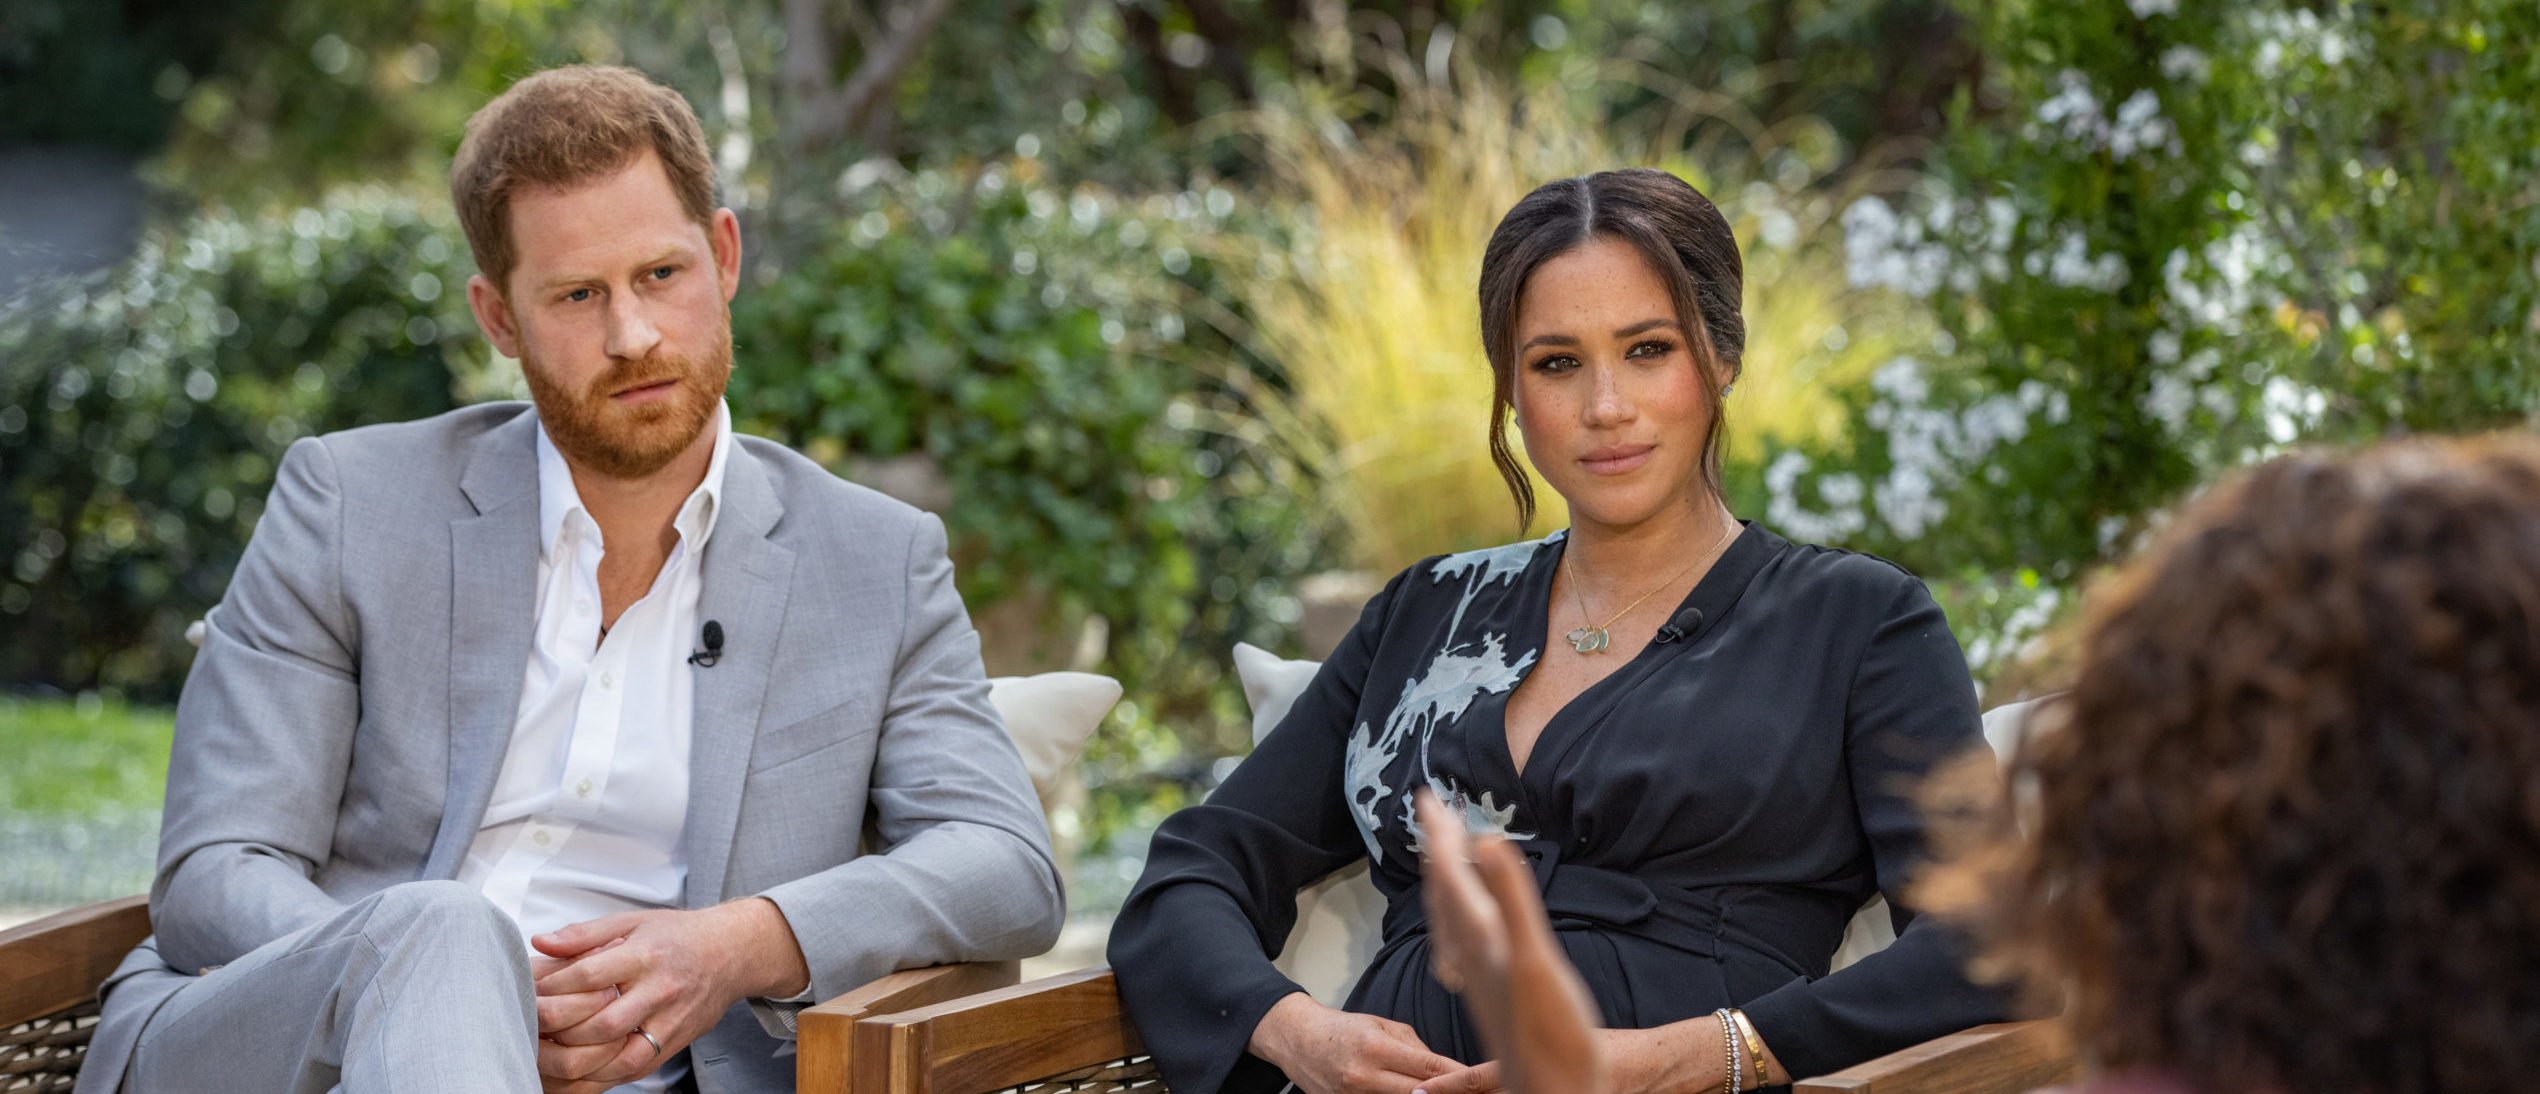 In this handout image provided by Harpo Productions and released on March 5, 2021, Oprah Winfrey interviews Prince Harry and Meghan Markle on A CBS Primetime Special premiering on CBS on March 7, 2021. (Photo by Harpo Productions/Joe Pugliese via Getty Images)